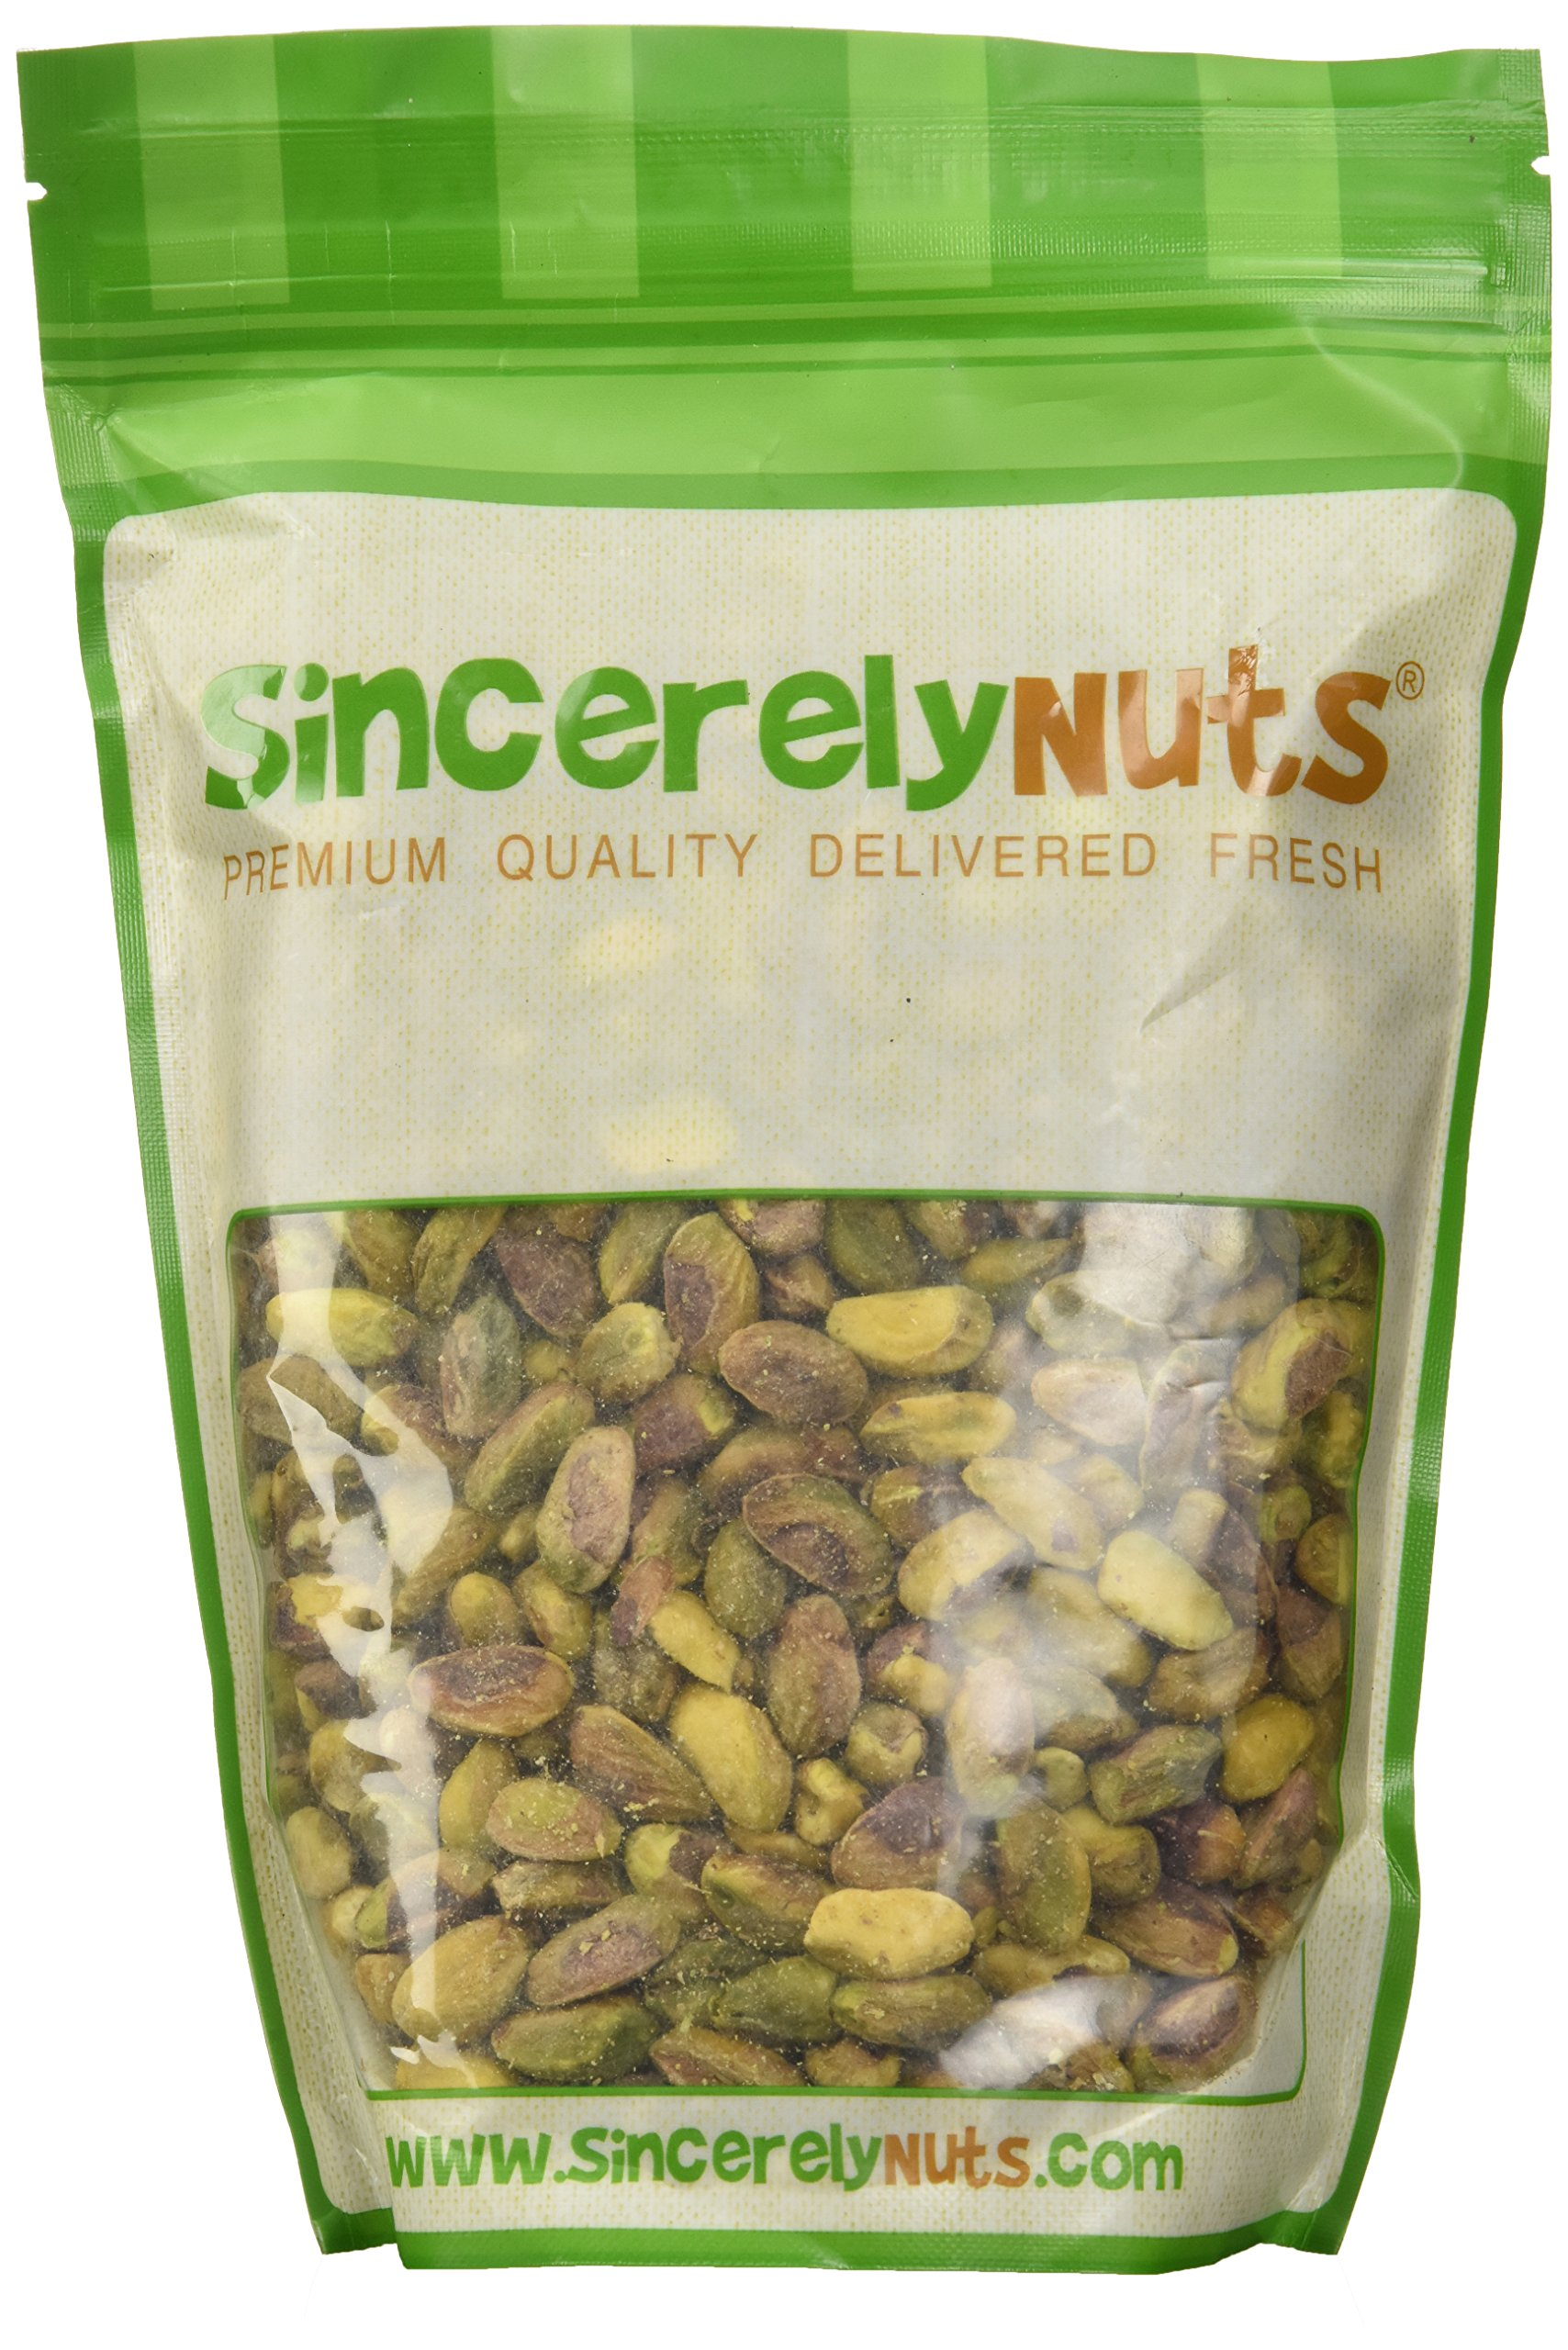 Sincerely Nuts Pistachios Roasted & Unsalted Kernels (No Shell) - One Lb. Bag - Irresistibly Delish and Crunchy - Bursting with Antioxidants - Kosher